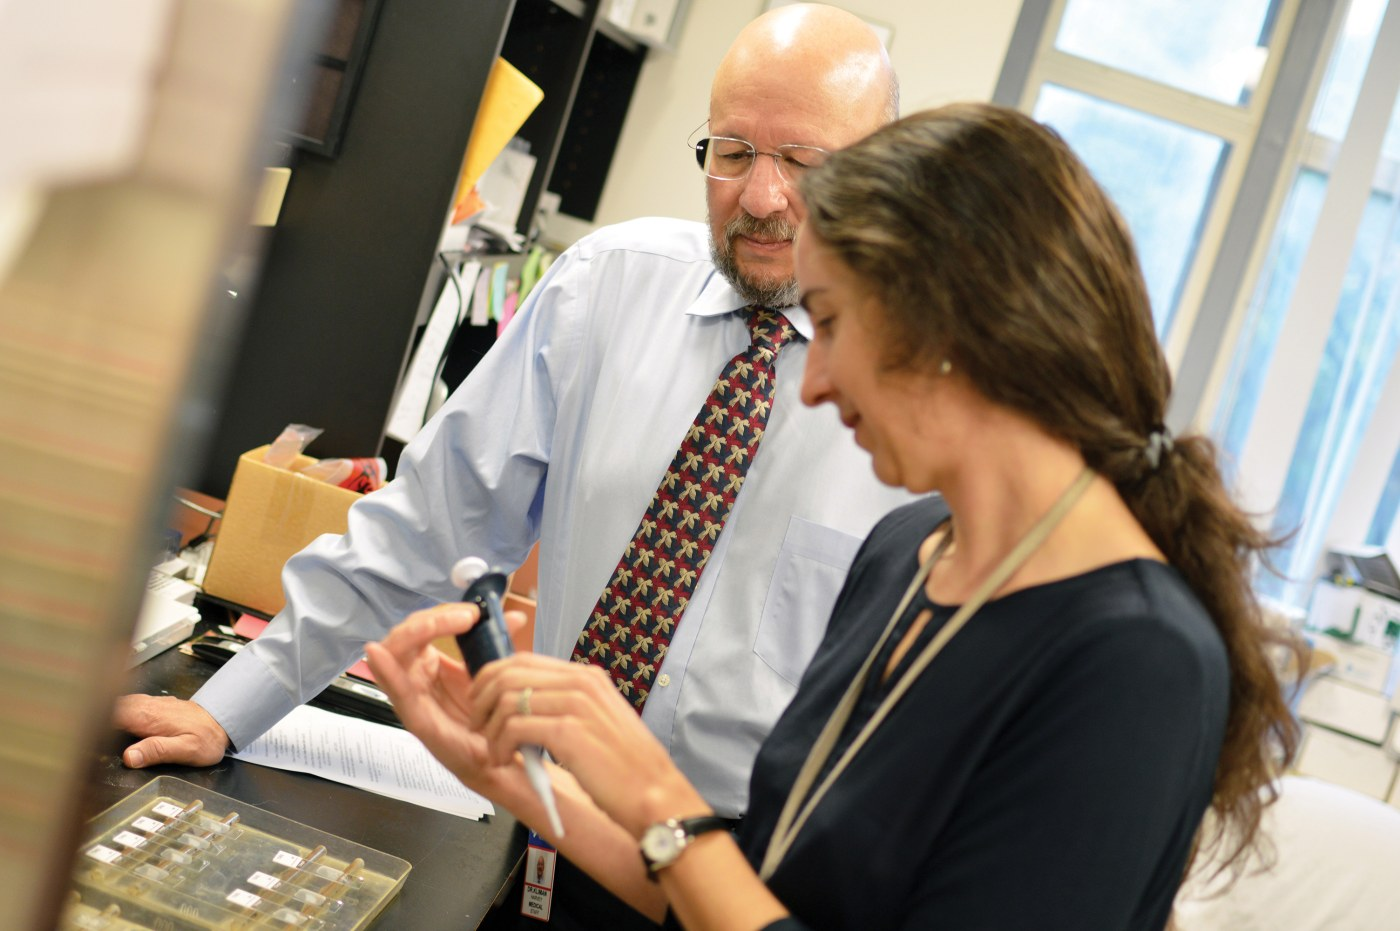 Dr. Harvey Kliman (Left) and research assistant Kristin Milano (right) help women determine if their uterine linings function properly to support a pregnancy.